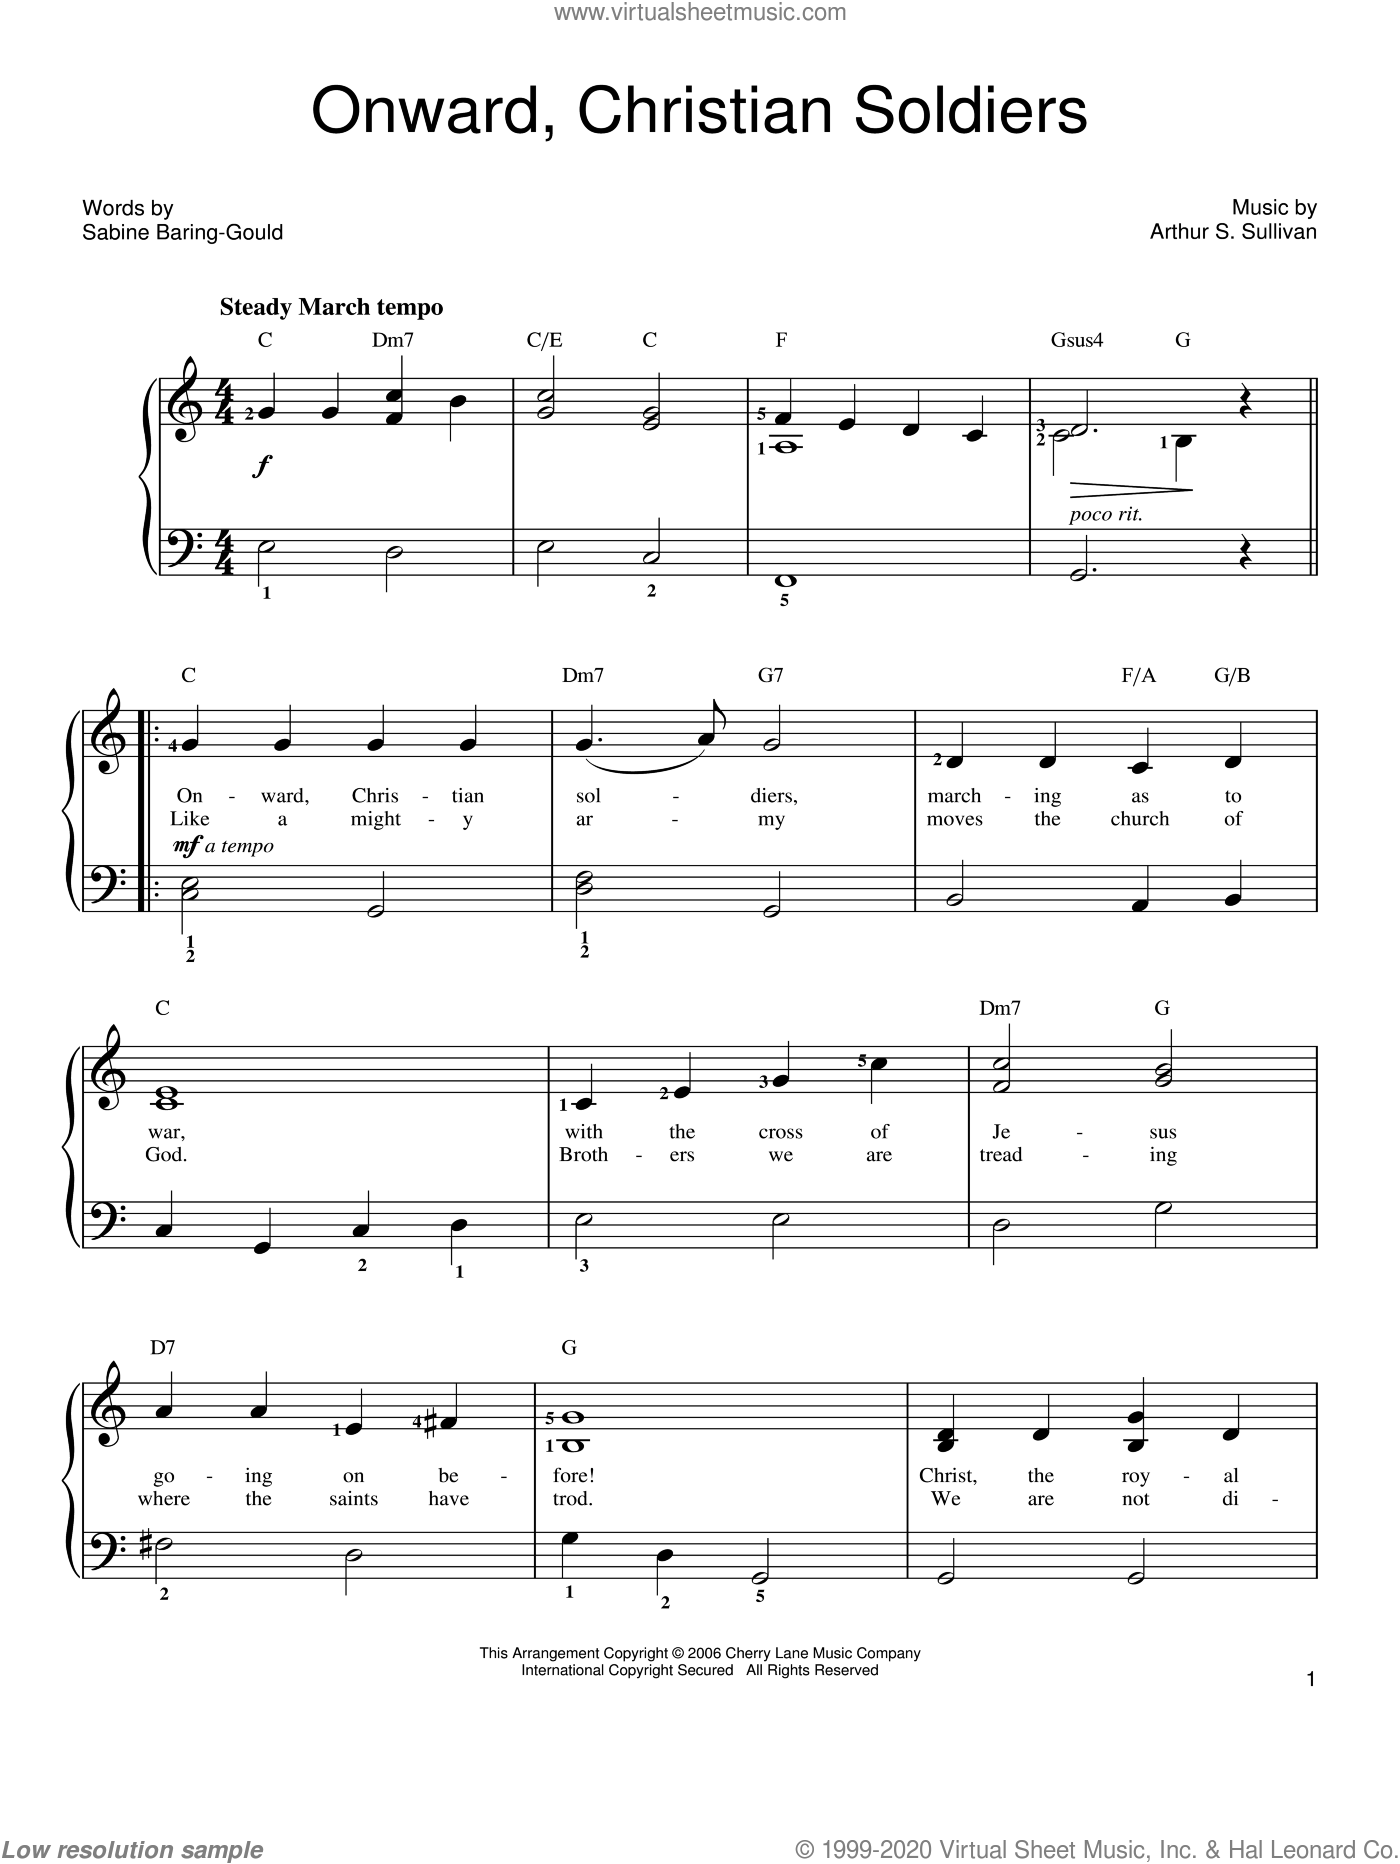 Onward, Christian Soldiers sheet music for piano solo (chords) by Arthur Sullivan